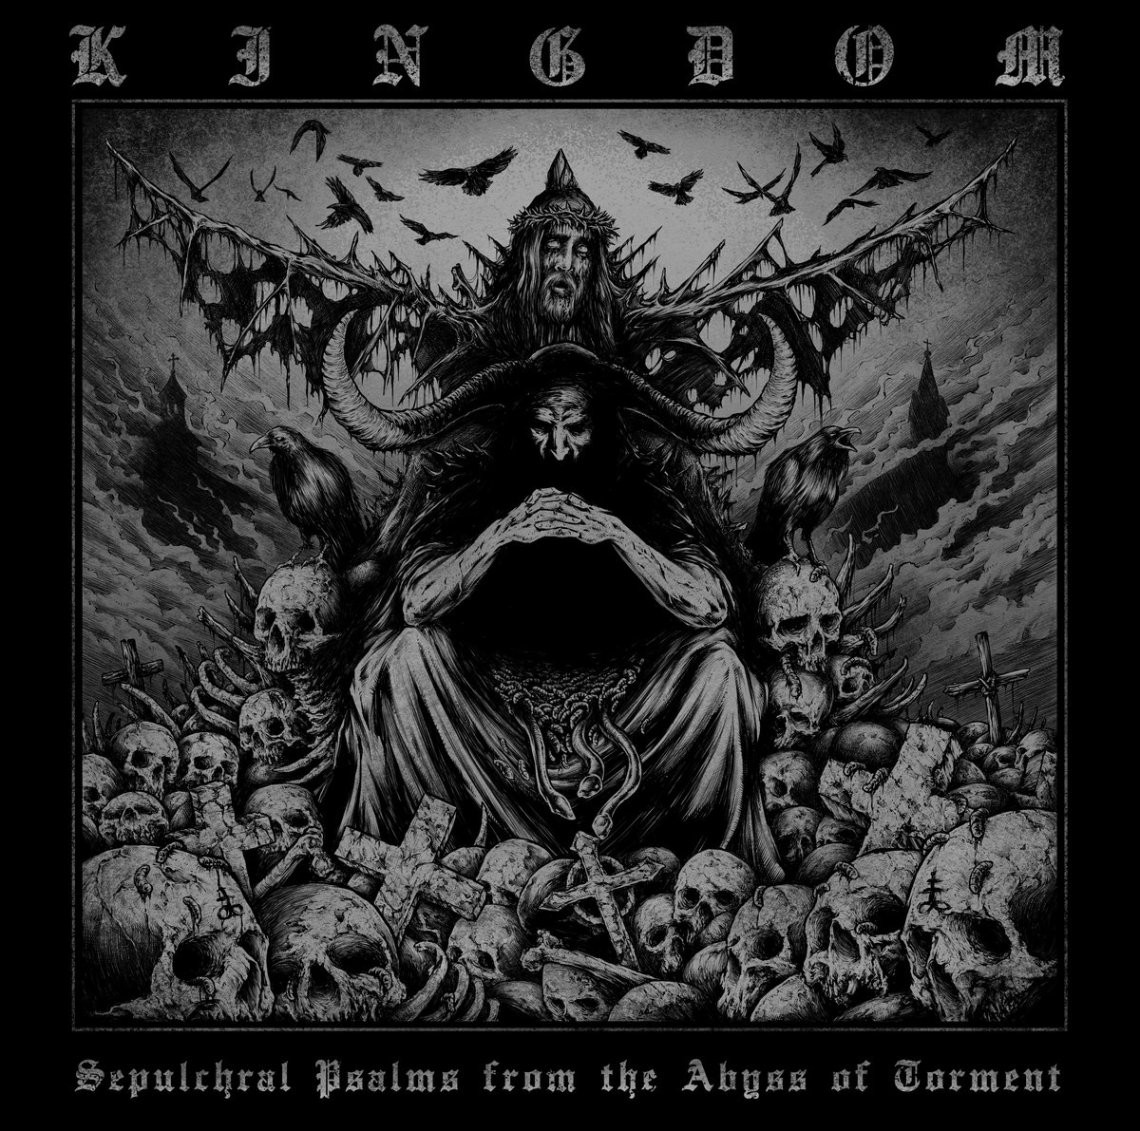 Kingdom – Sepulchral Psalms from the Abyss of Torment